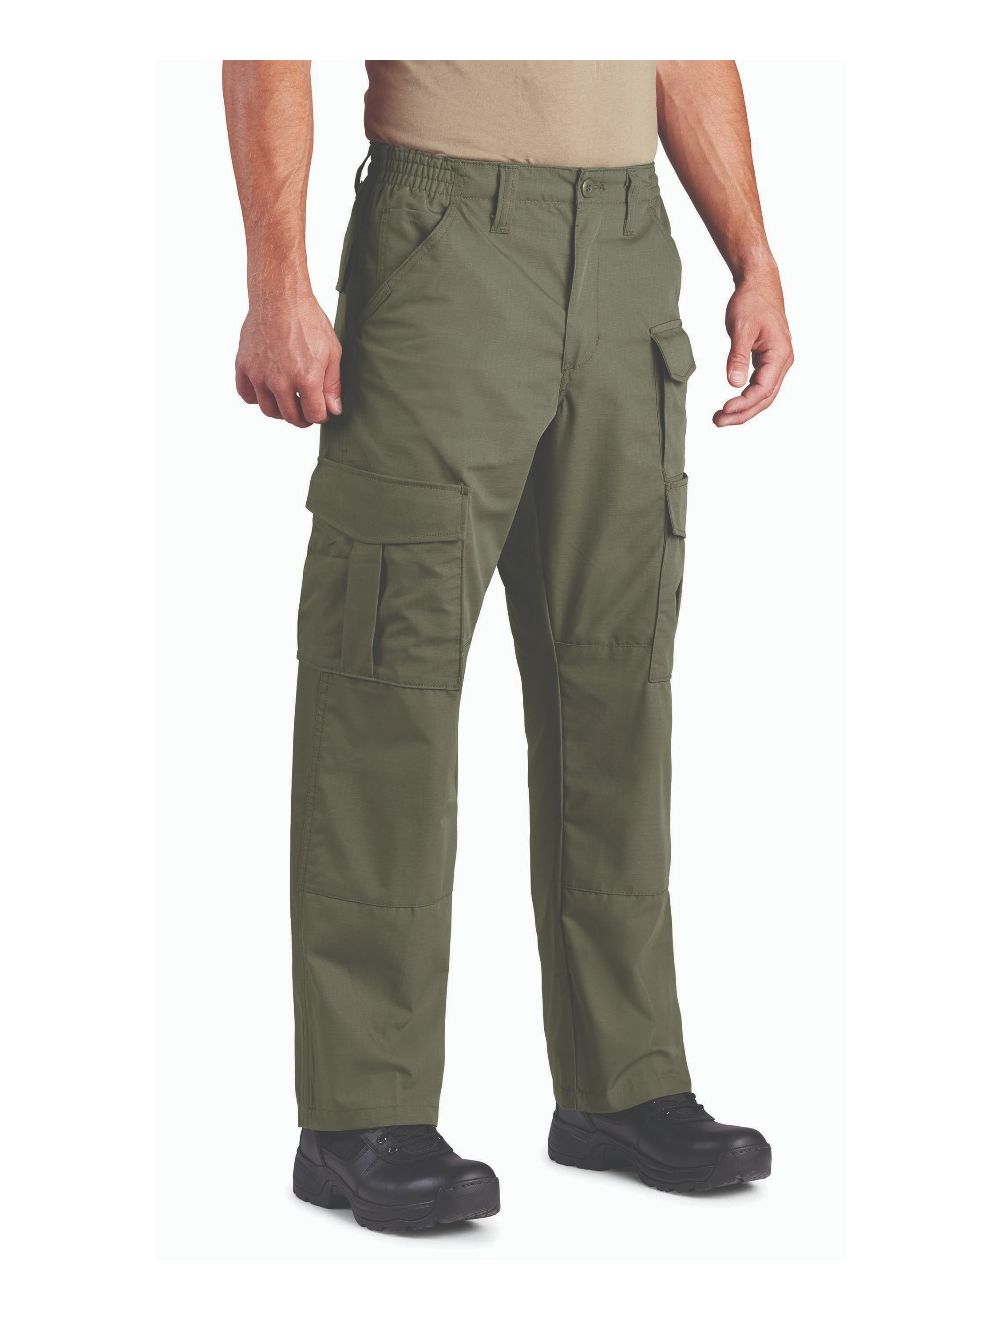 Propper F5251-25 Uniform Tactical Pants